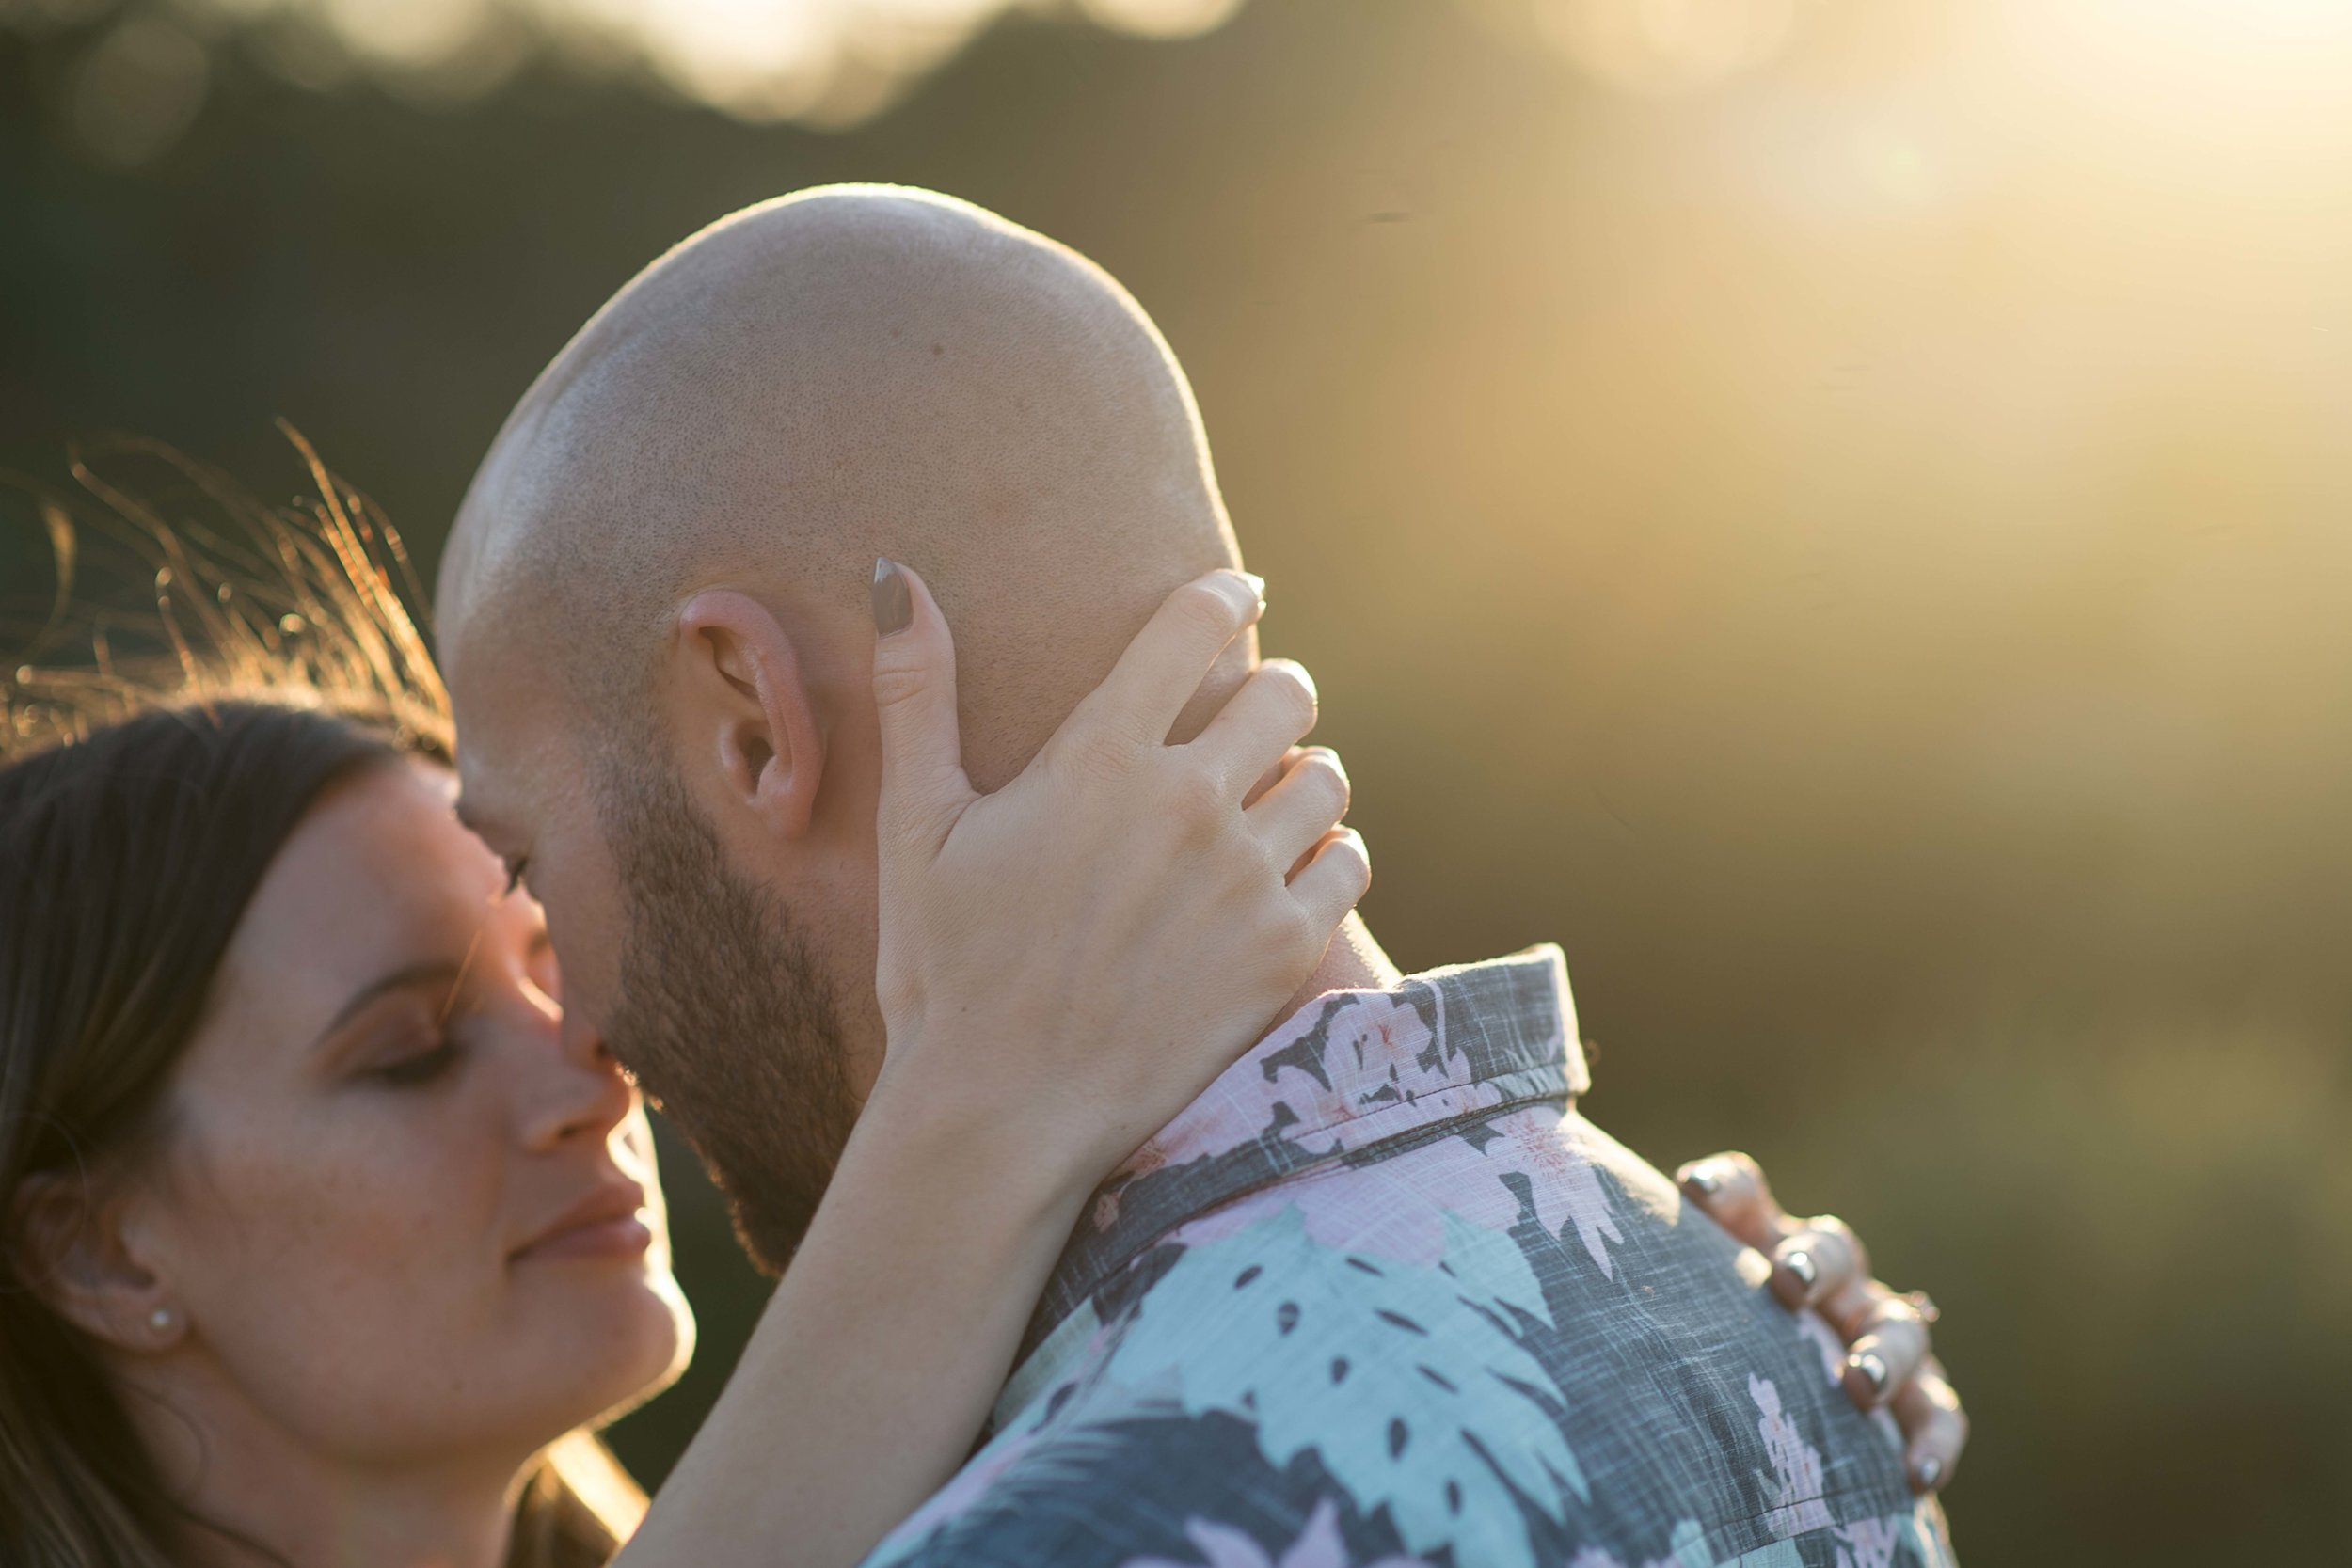 Christy-D-Swanberg-Photography-Calgary-Engagements-southern-california-29.jpg